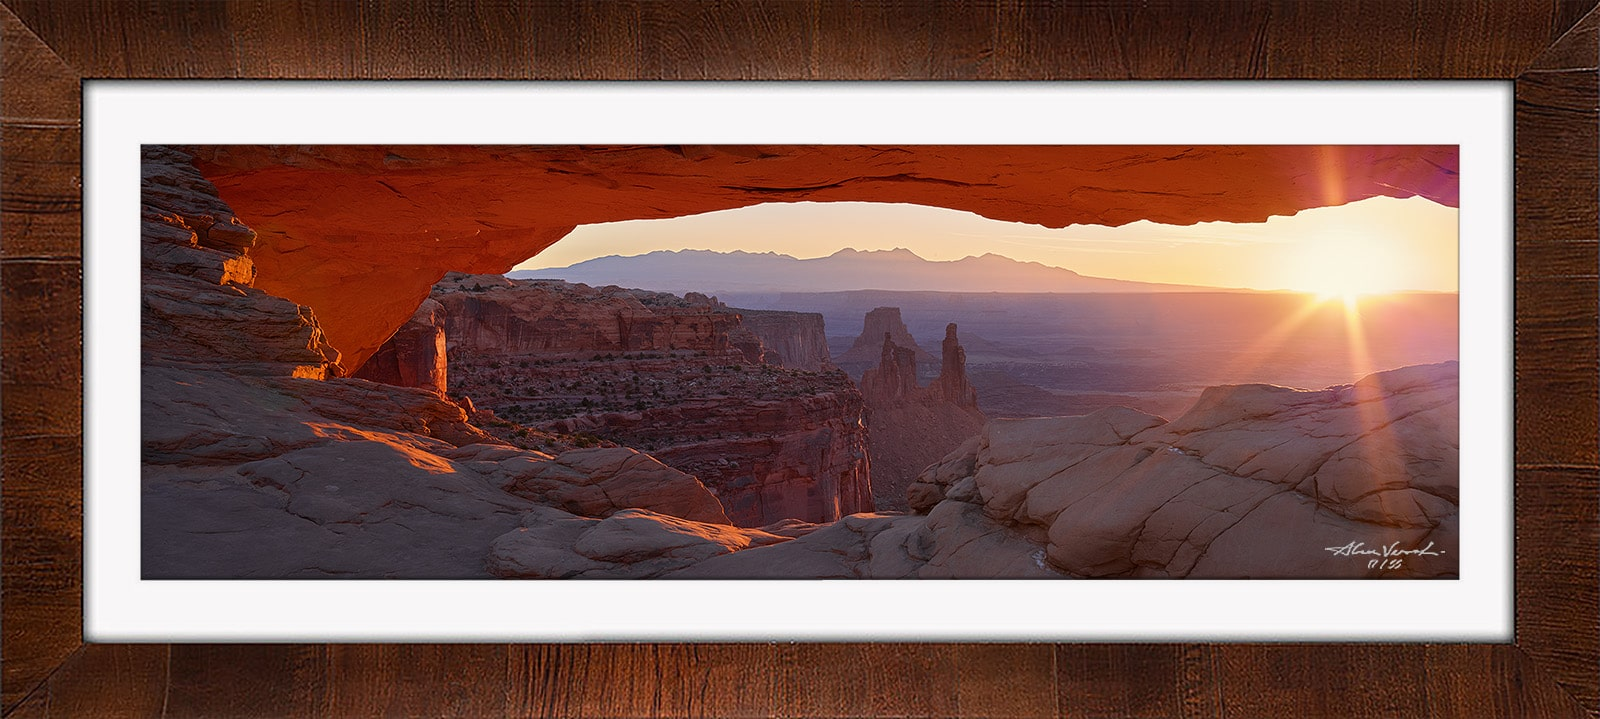 Limited Edition Nature Photography Custom Frames